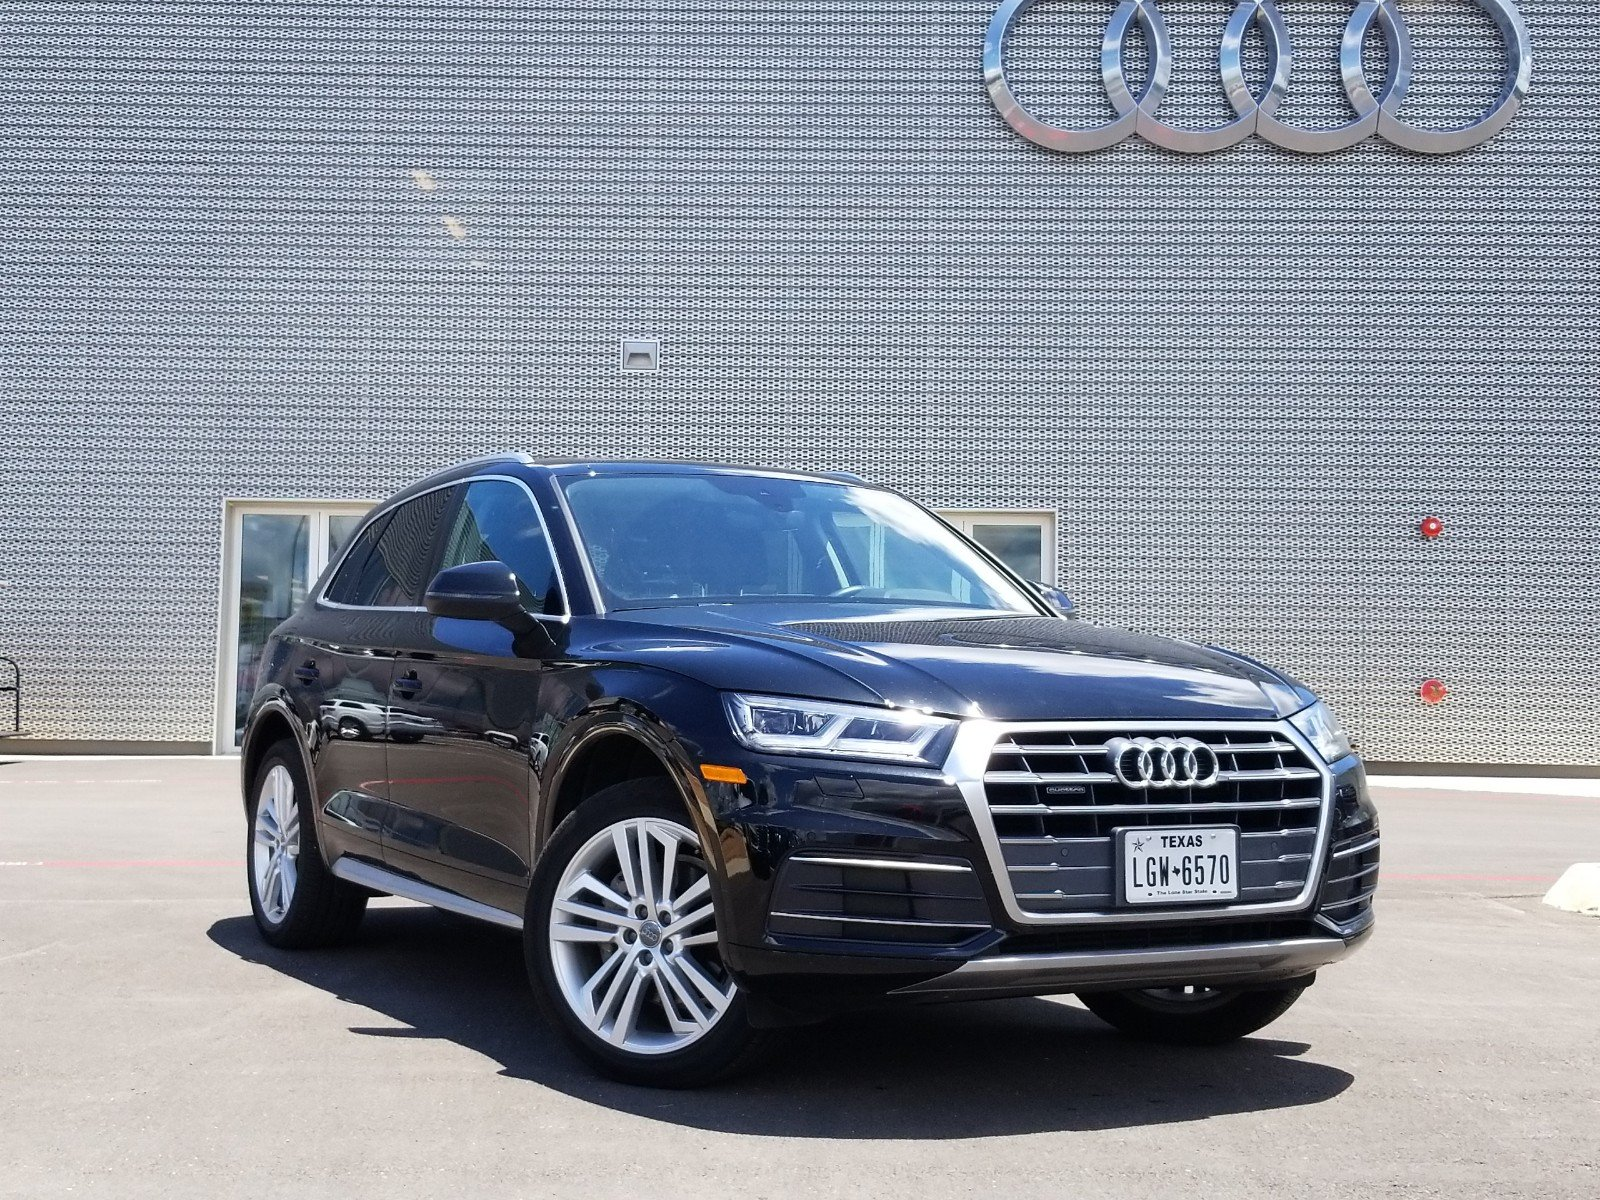 Used Luxury Cars For Sale >> Featured Used Luxury Cars Trucks And Suvs For Sale In San